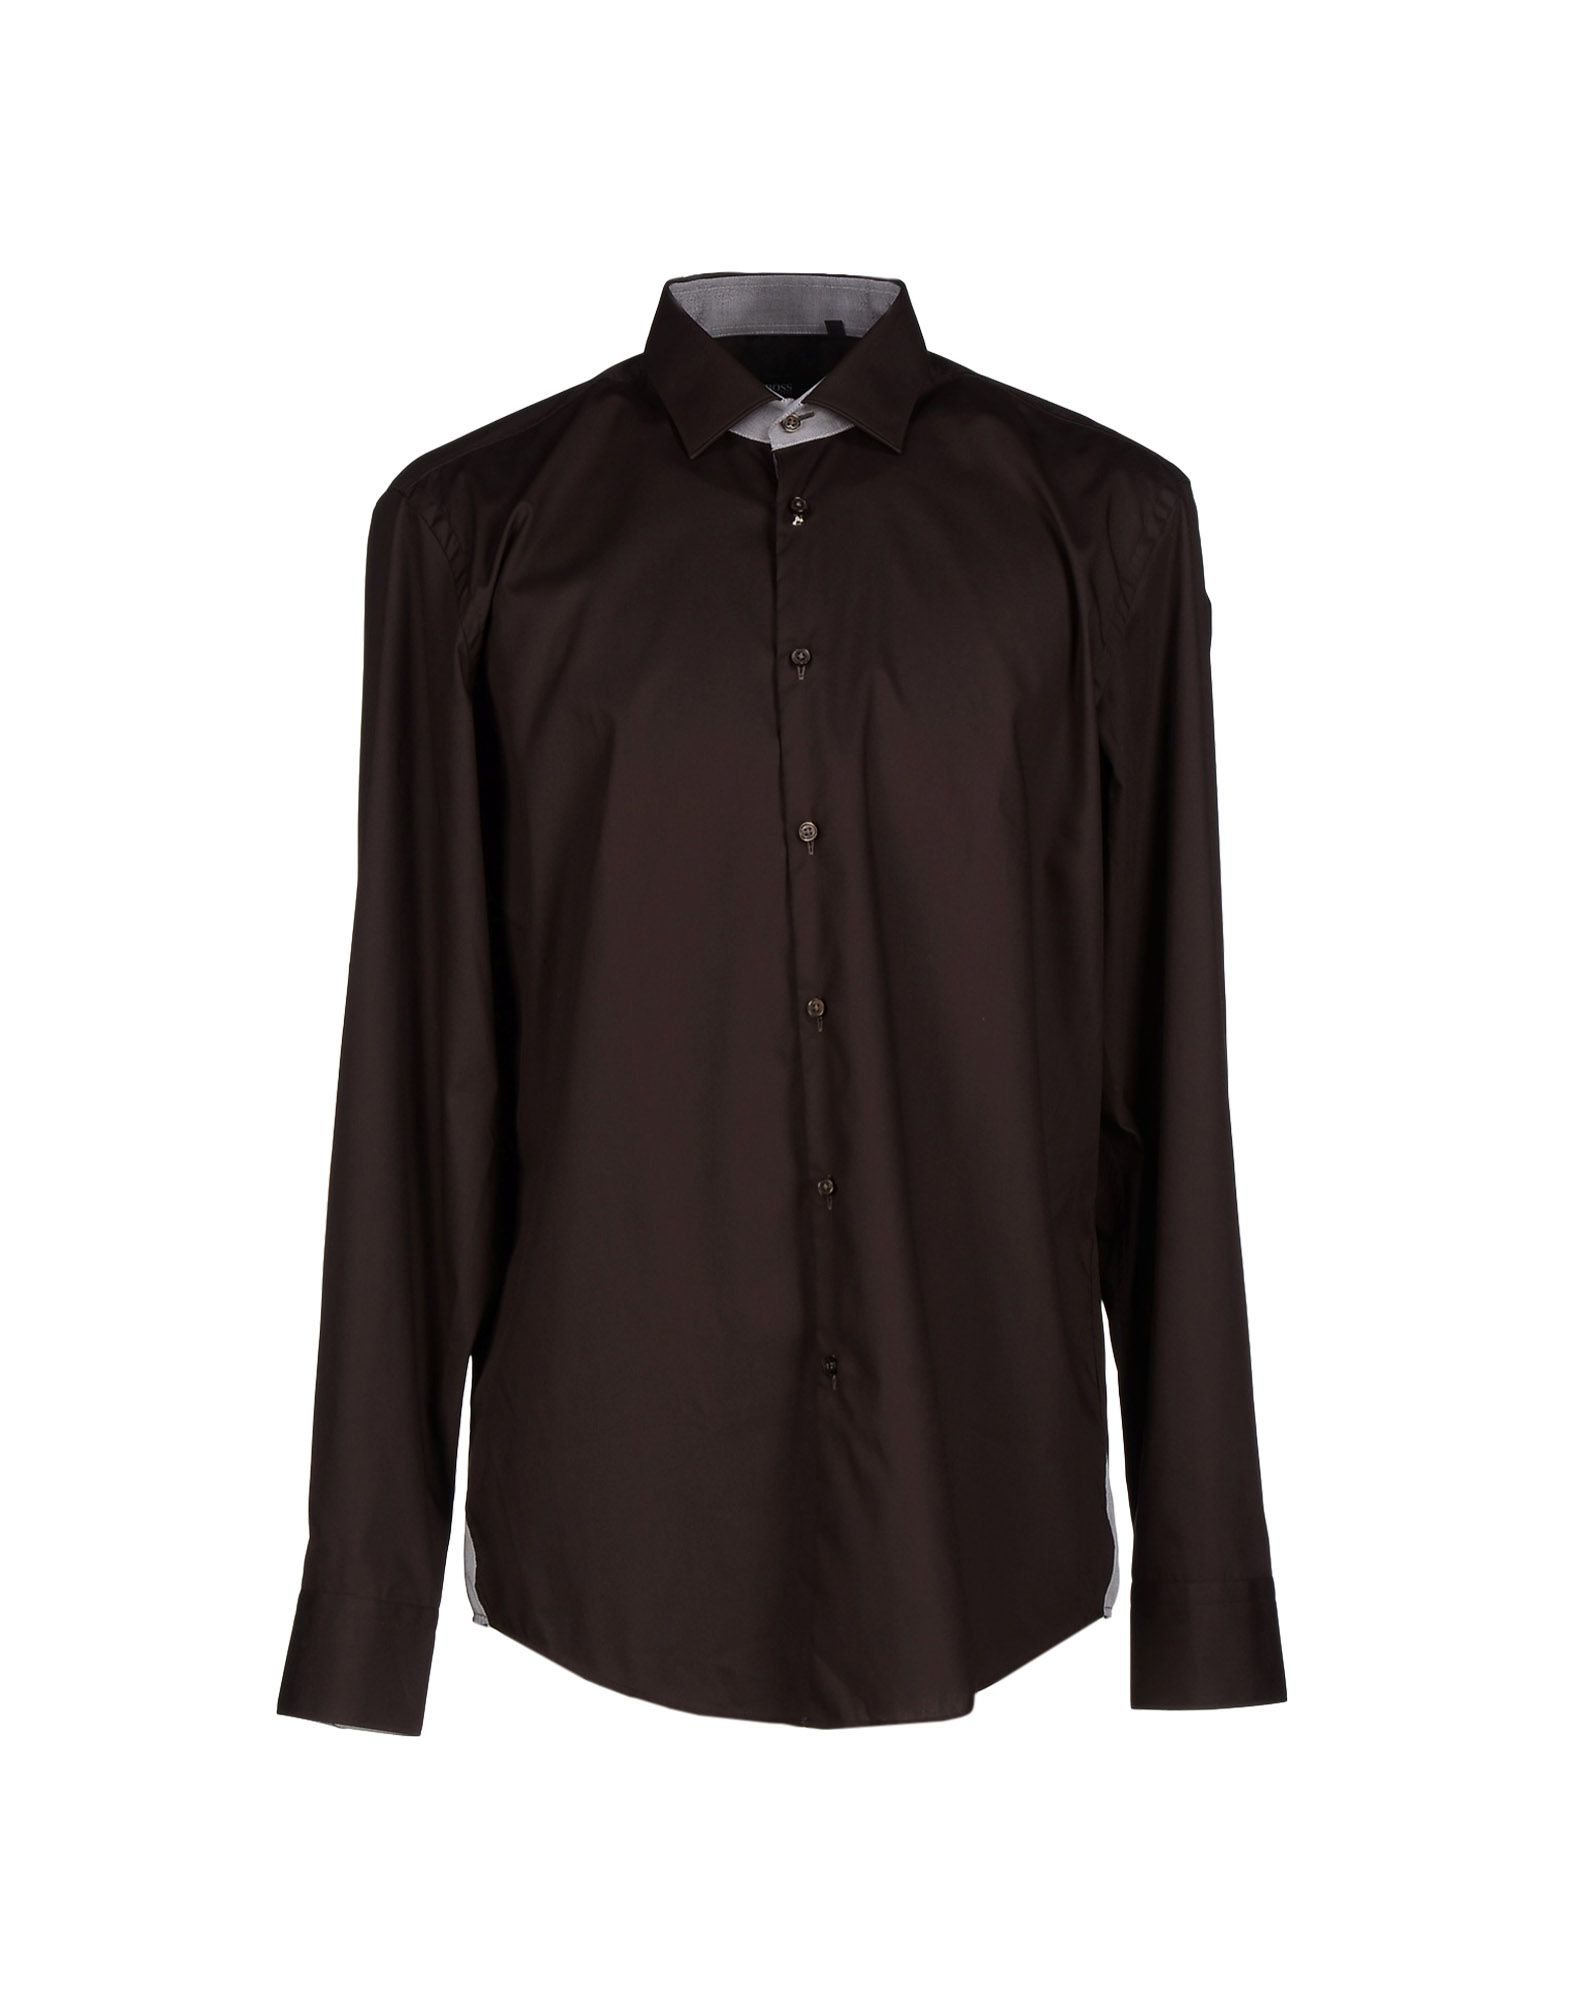 Lyst boss black shirt in brown for men for Black brown mens shirts